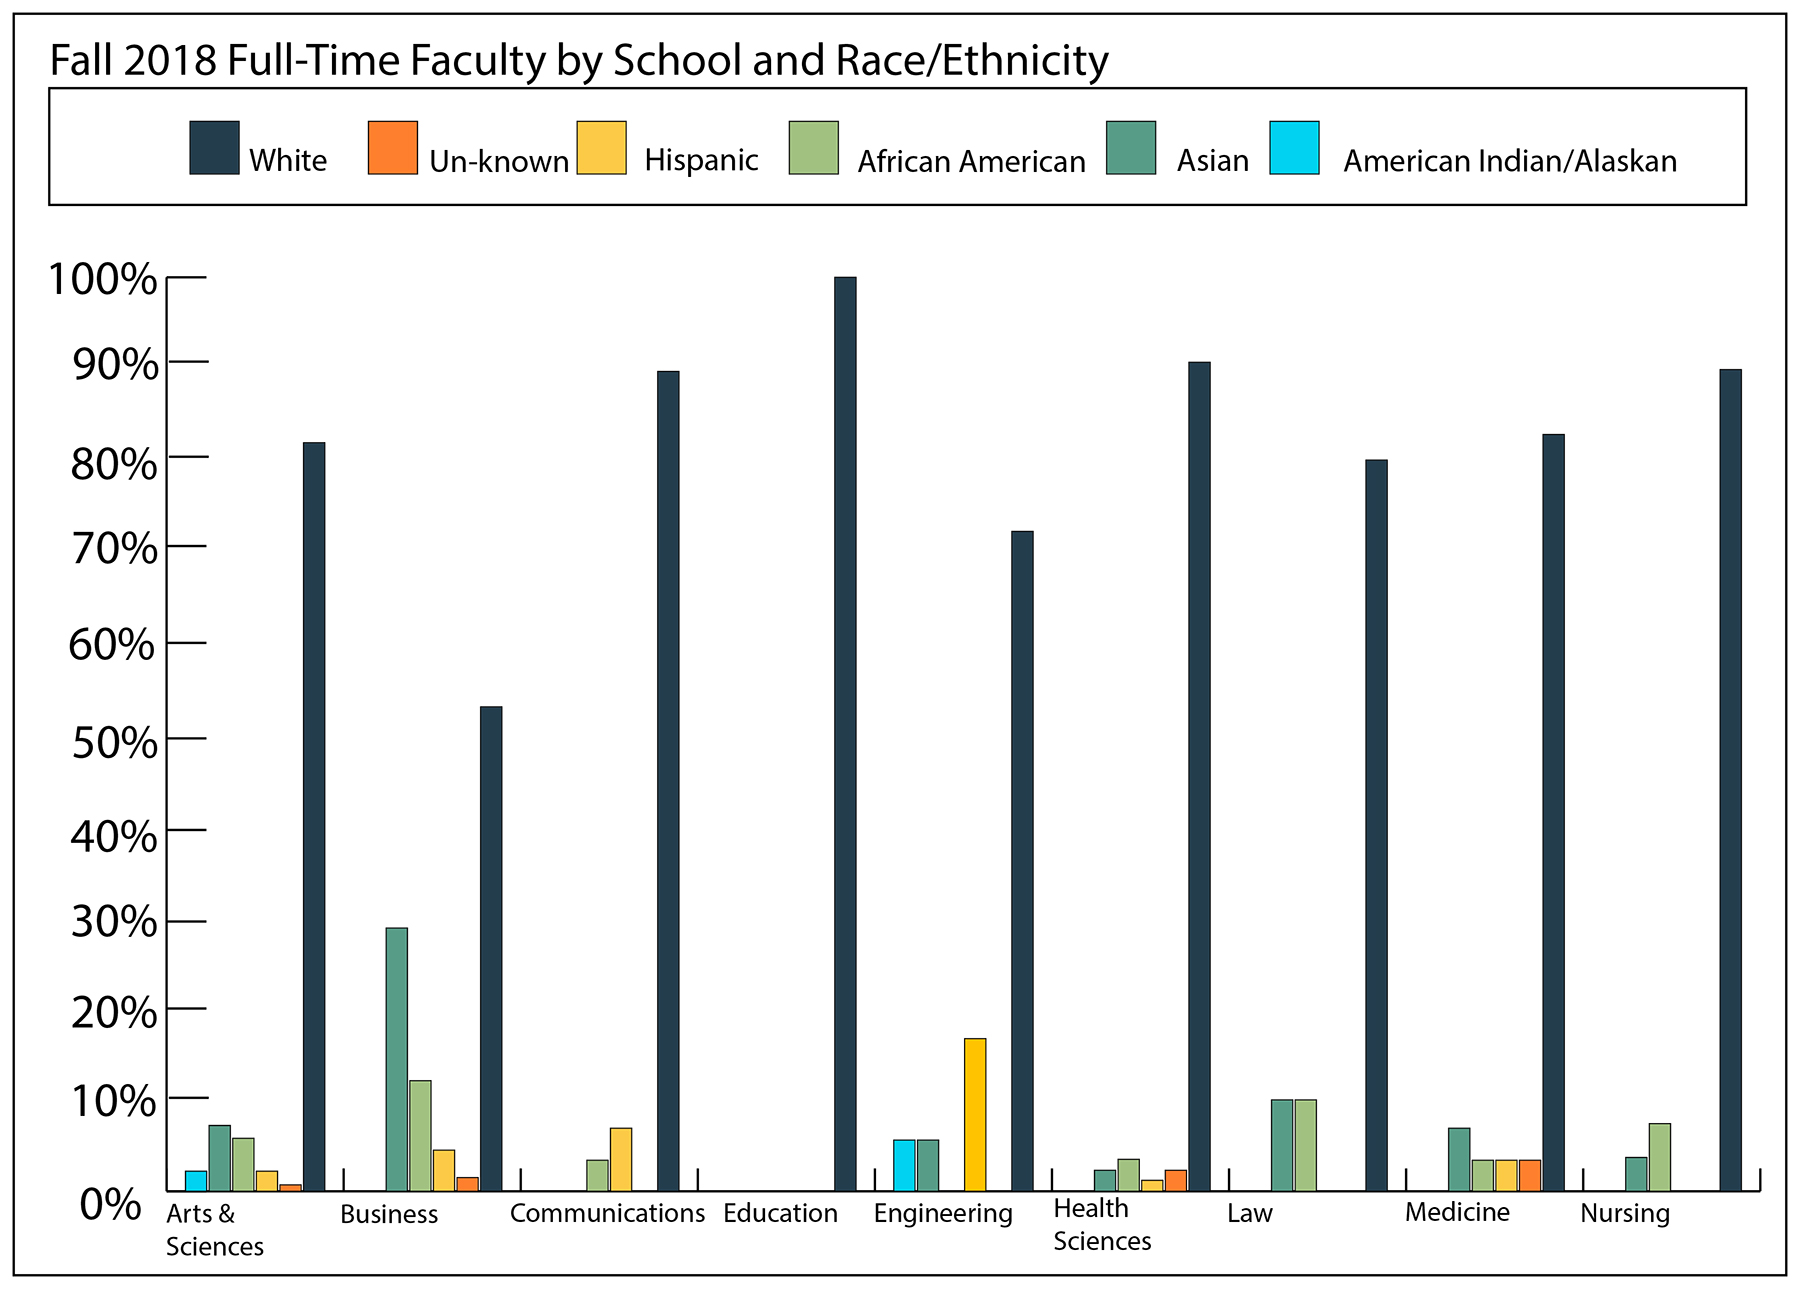 Bar graph outlining the racial demographics of 2018 full-time faculty members by school.